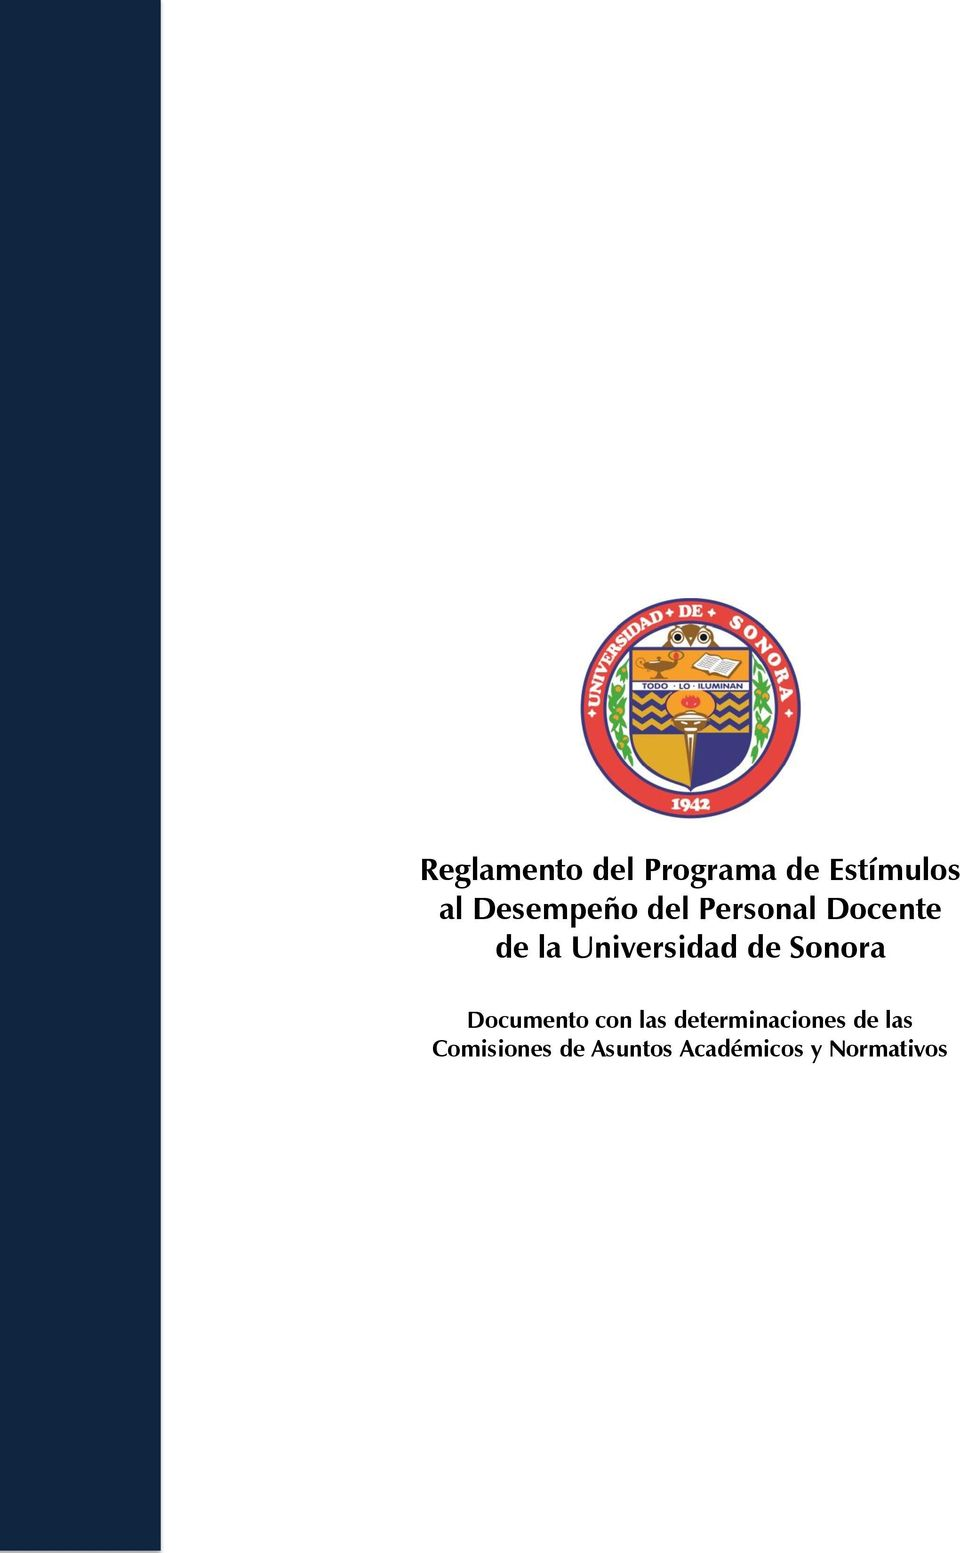 Universidad de Sonora Documento con las